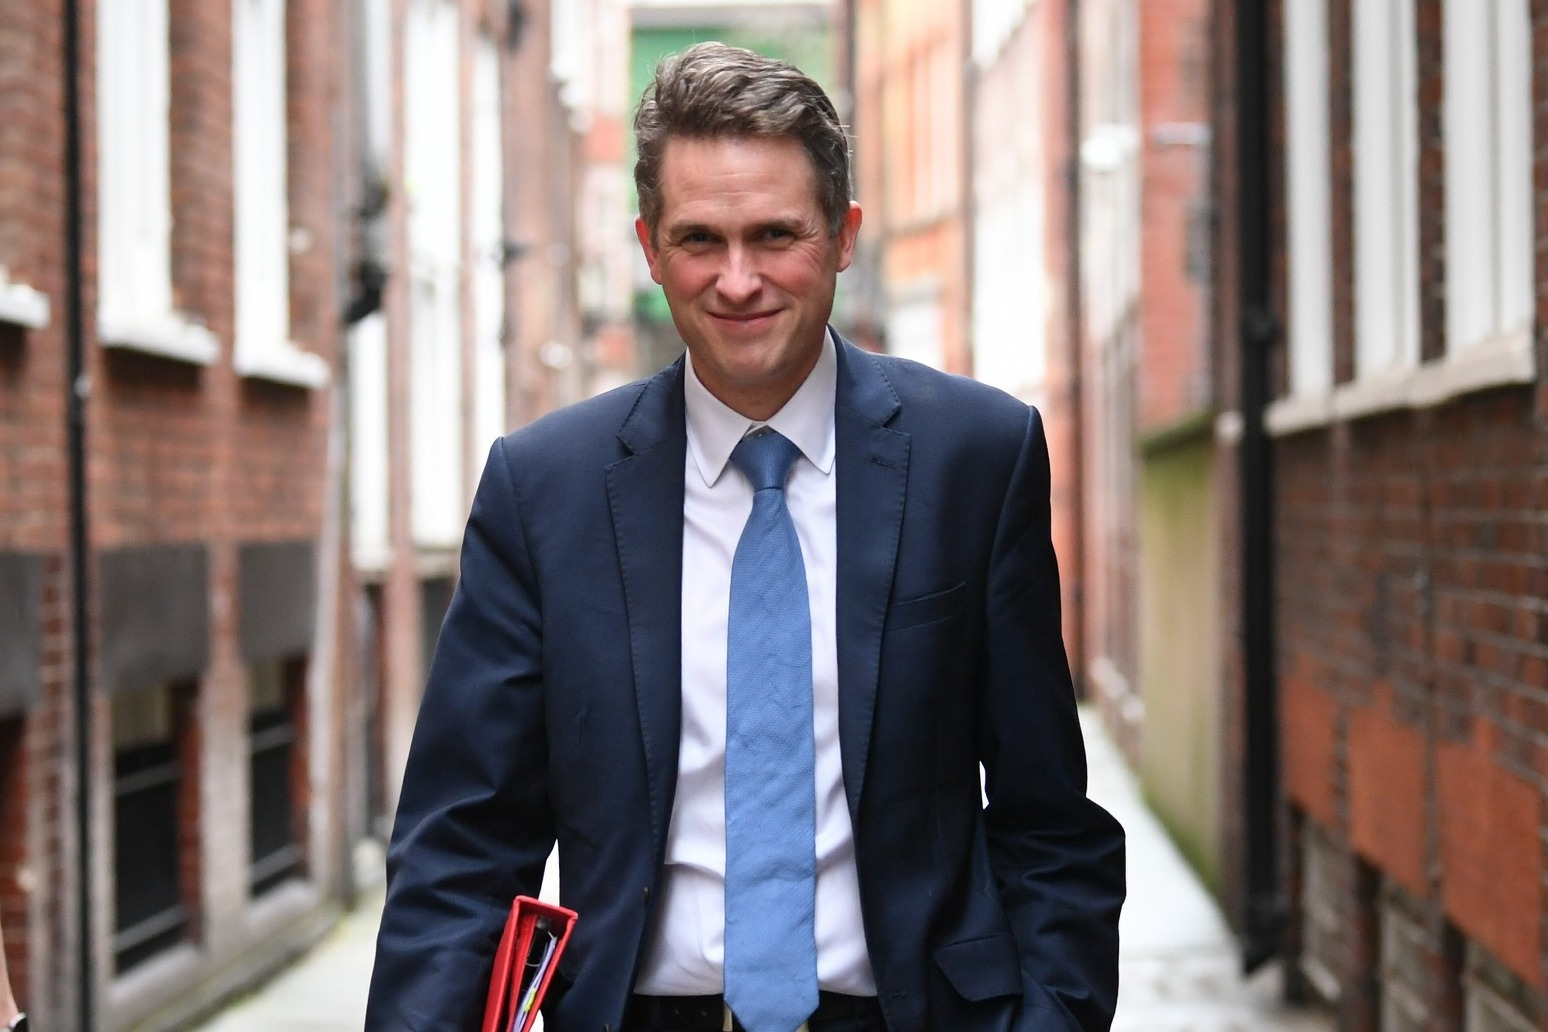 Gavin Williamson urges all pupils and their families to get Covid tests